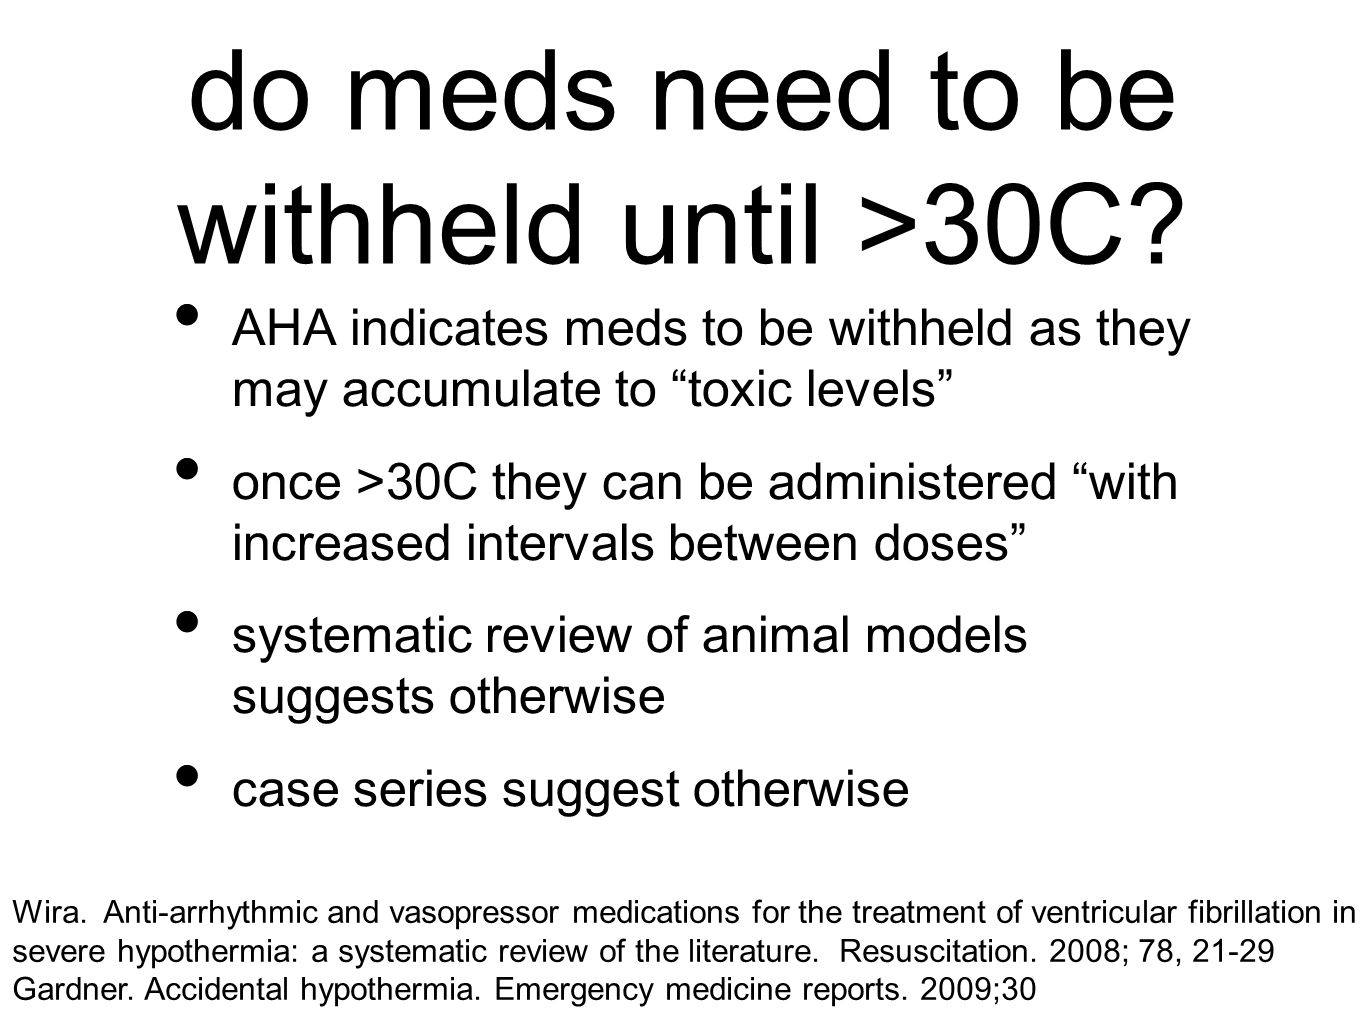 "do meds need to be withheld until >30C? AHA indicates meds to be withheld as they may accumulate to ""toxic levels"" once >30C they can be administered"